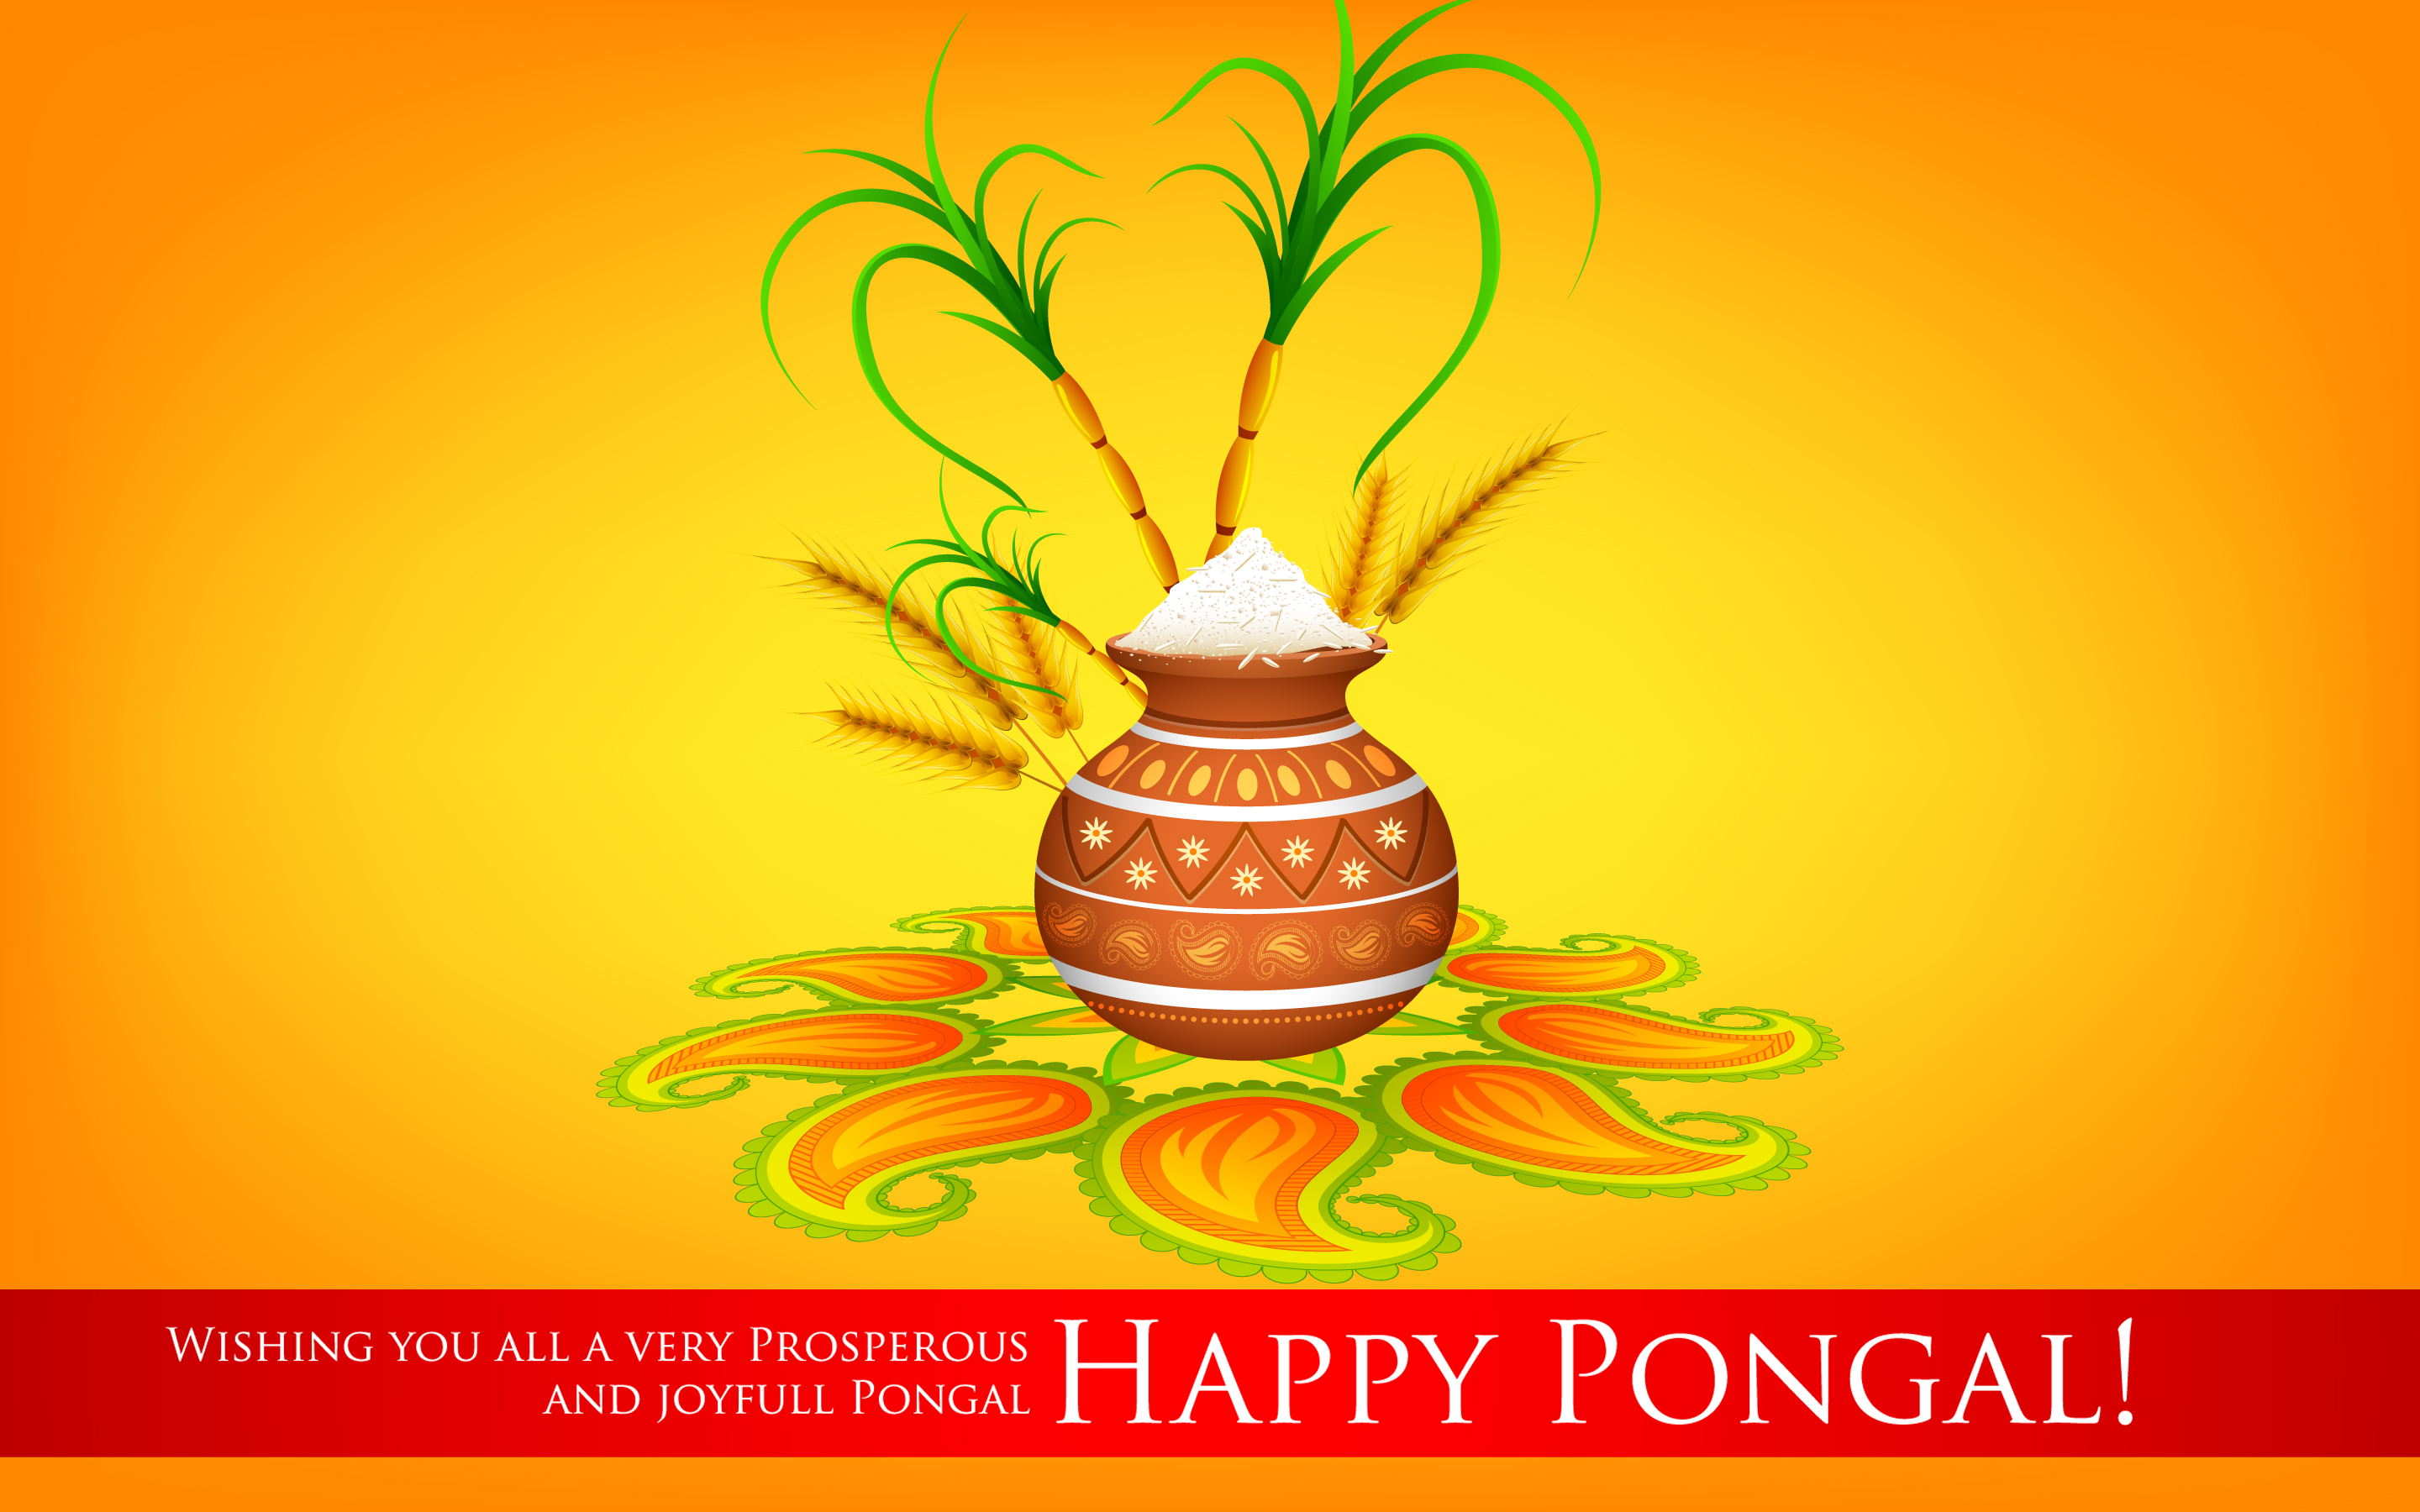 Happy Pongal Wallpapers Pictures Images  Free Download  Techicy